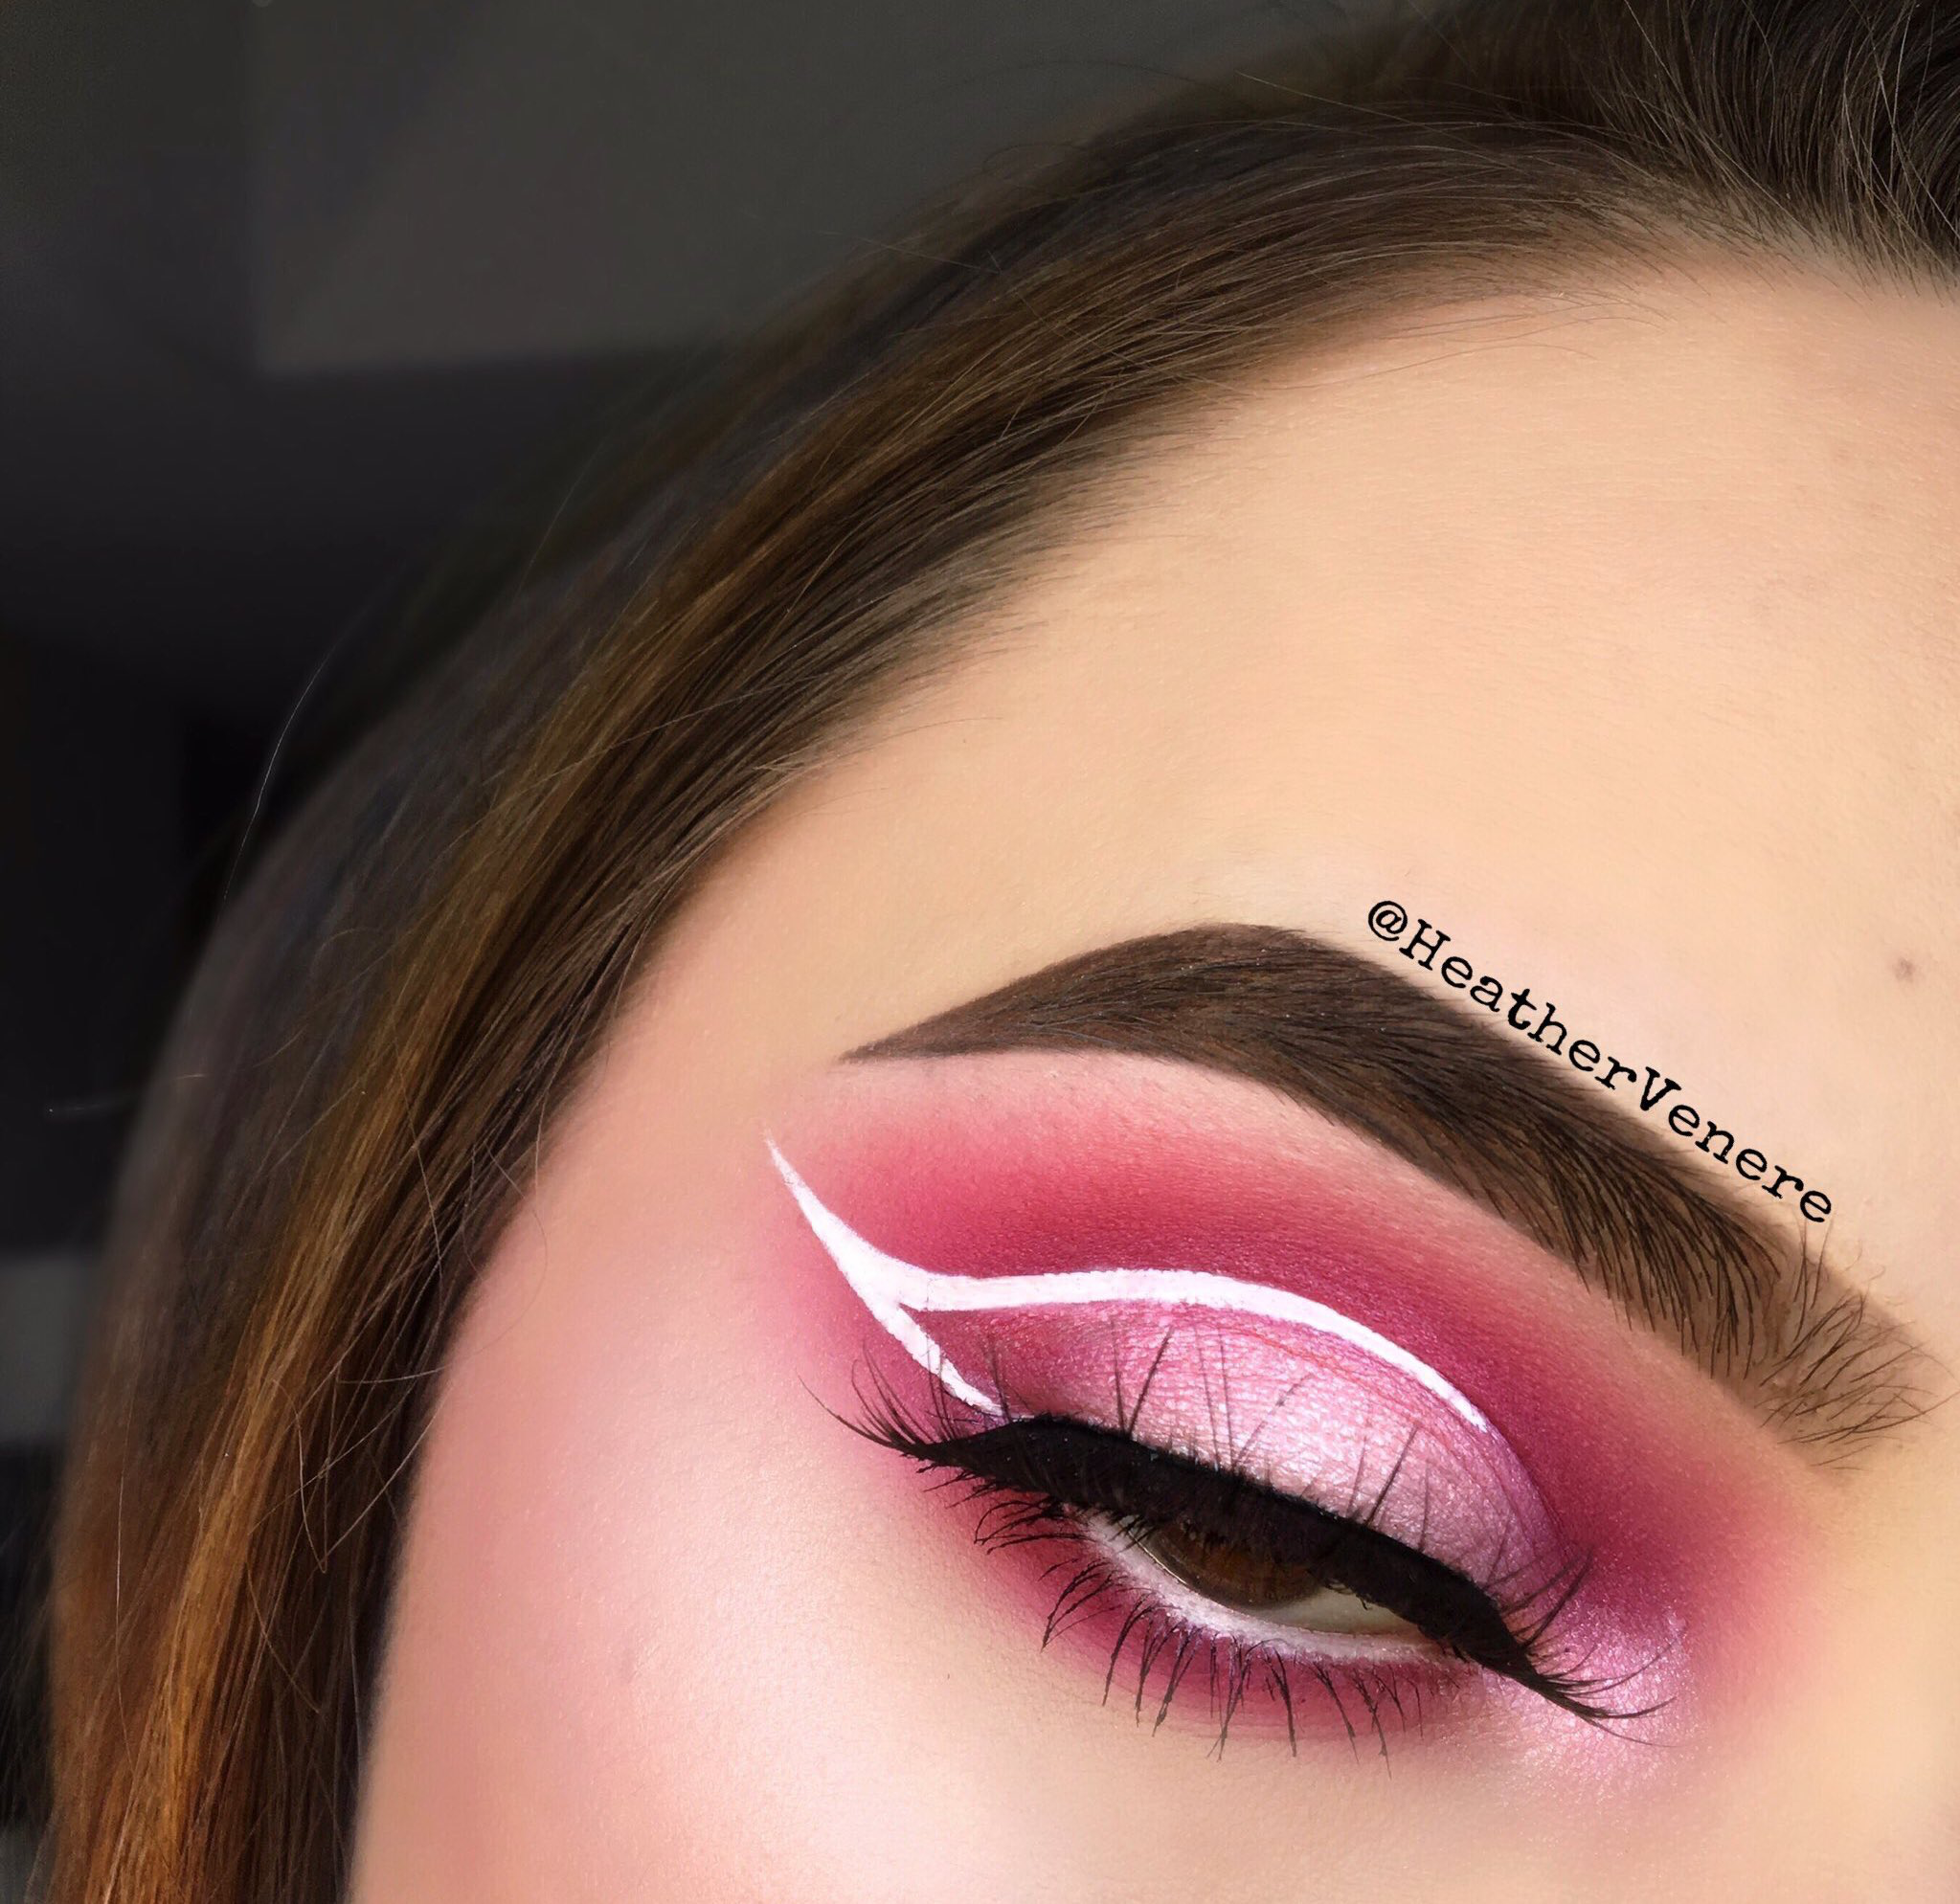 Pin By Angie Brakefield On Makeup Tips And Looks Eye Makeup Pink Makeup Makeup